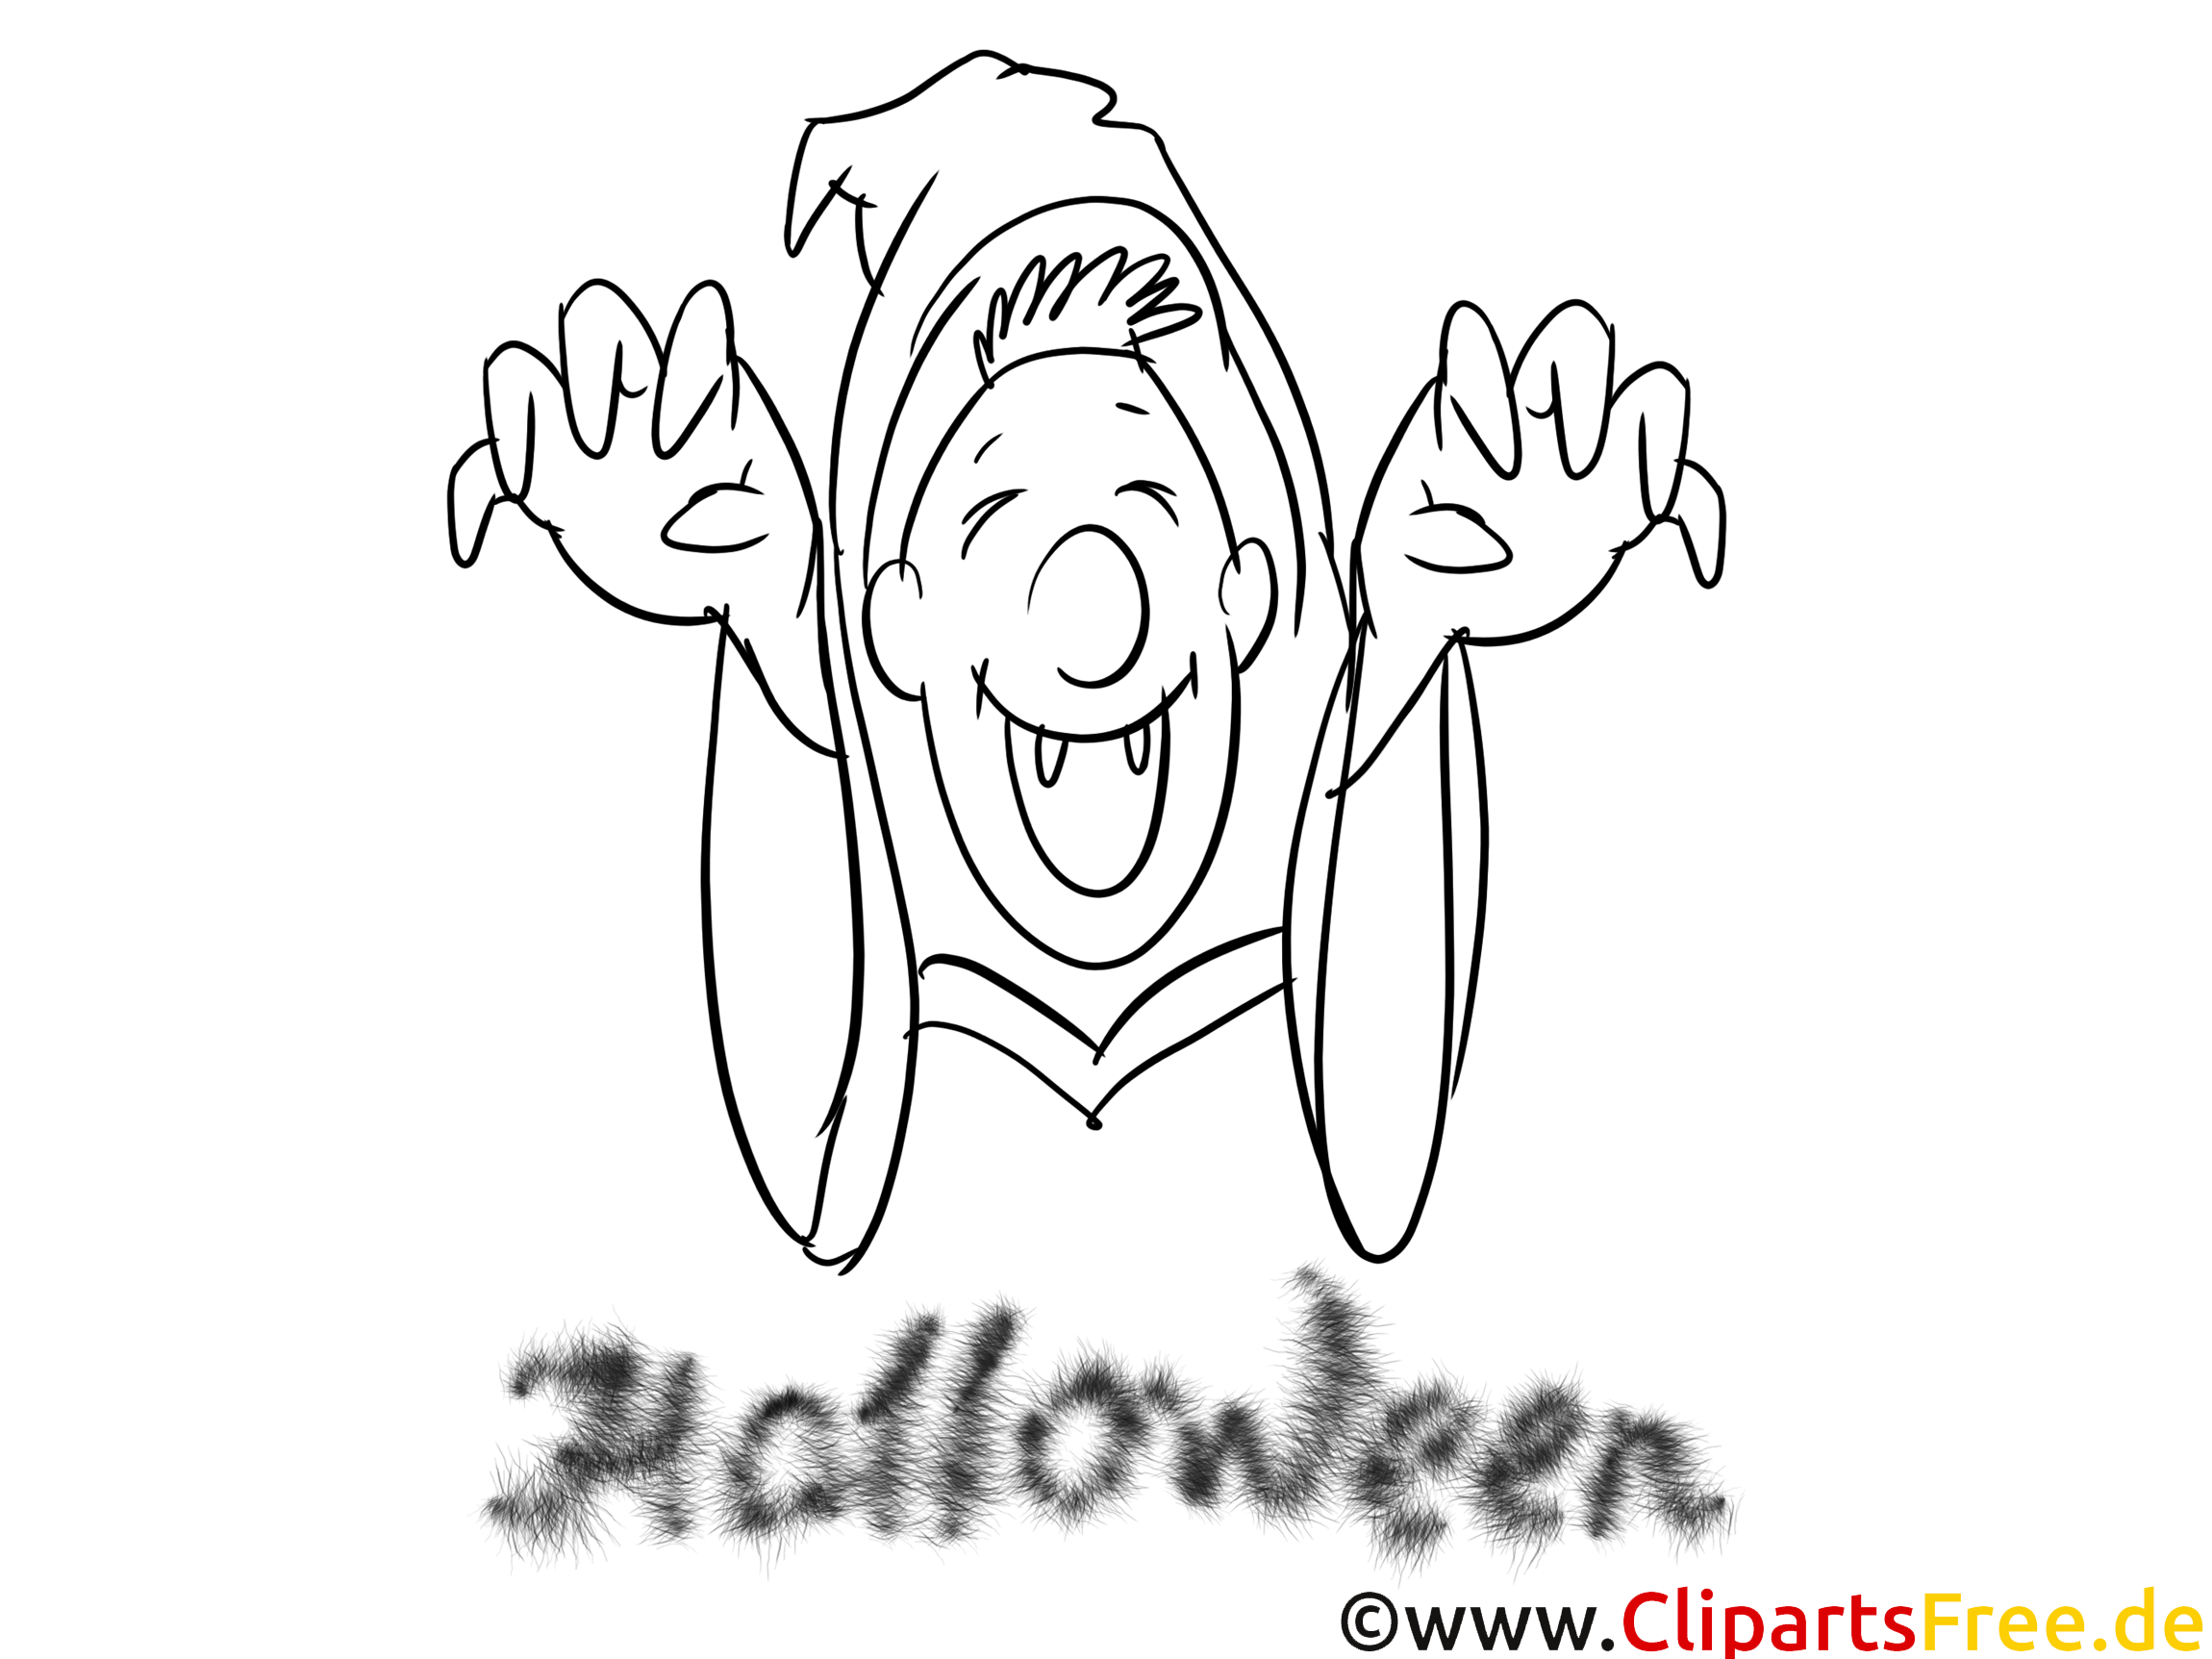 Déguisé clipart – Halloween dessins à colorier